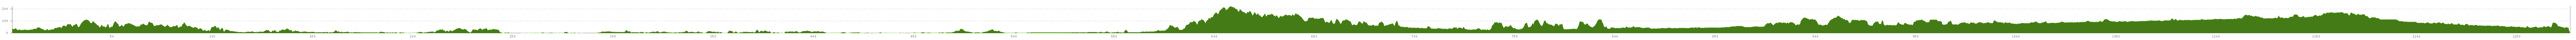 Elevation profile Cycle Tour Bretagne - Loire - Île-de-France - Fontainebleau